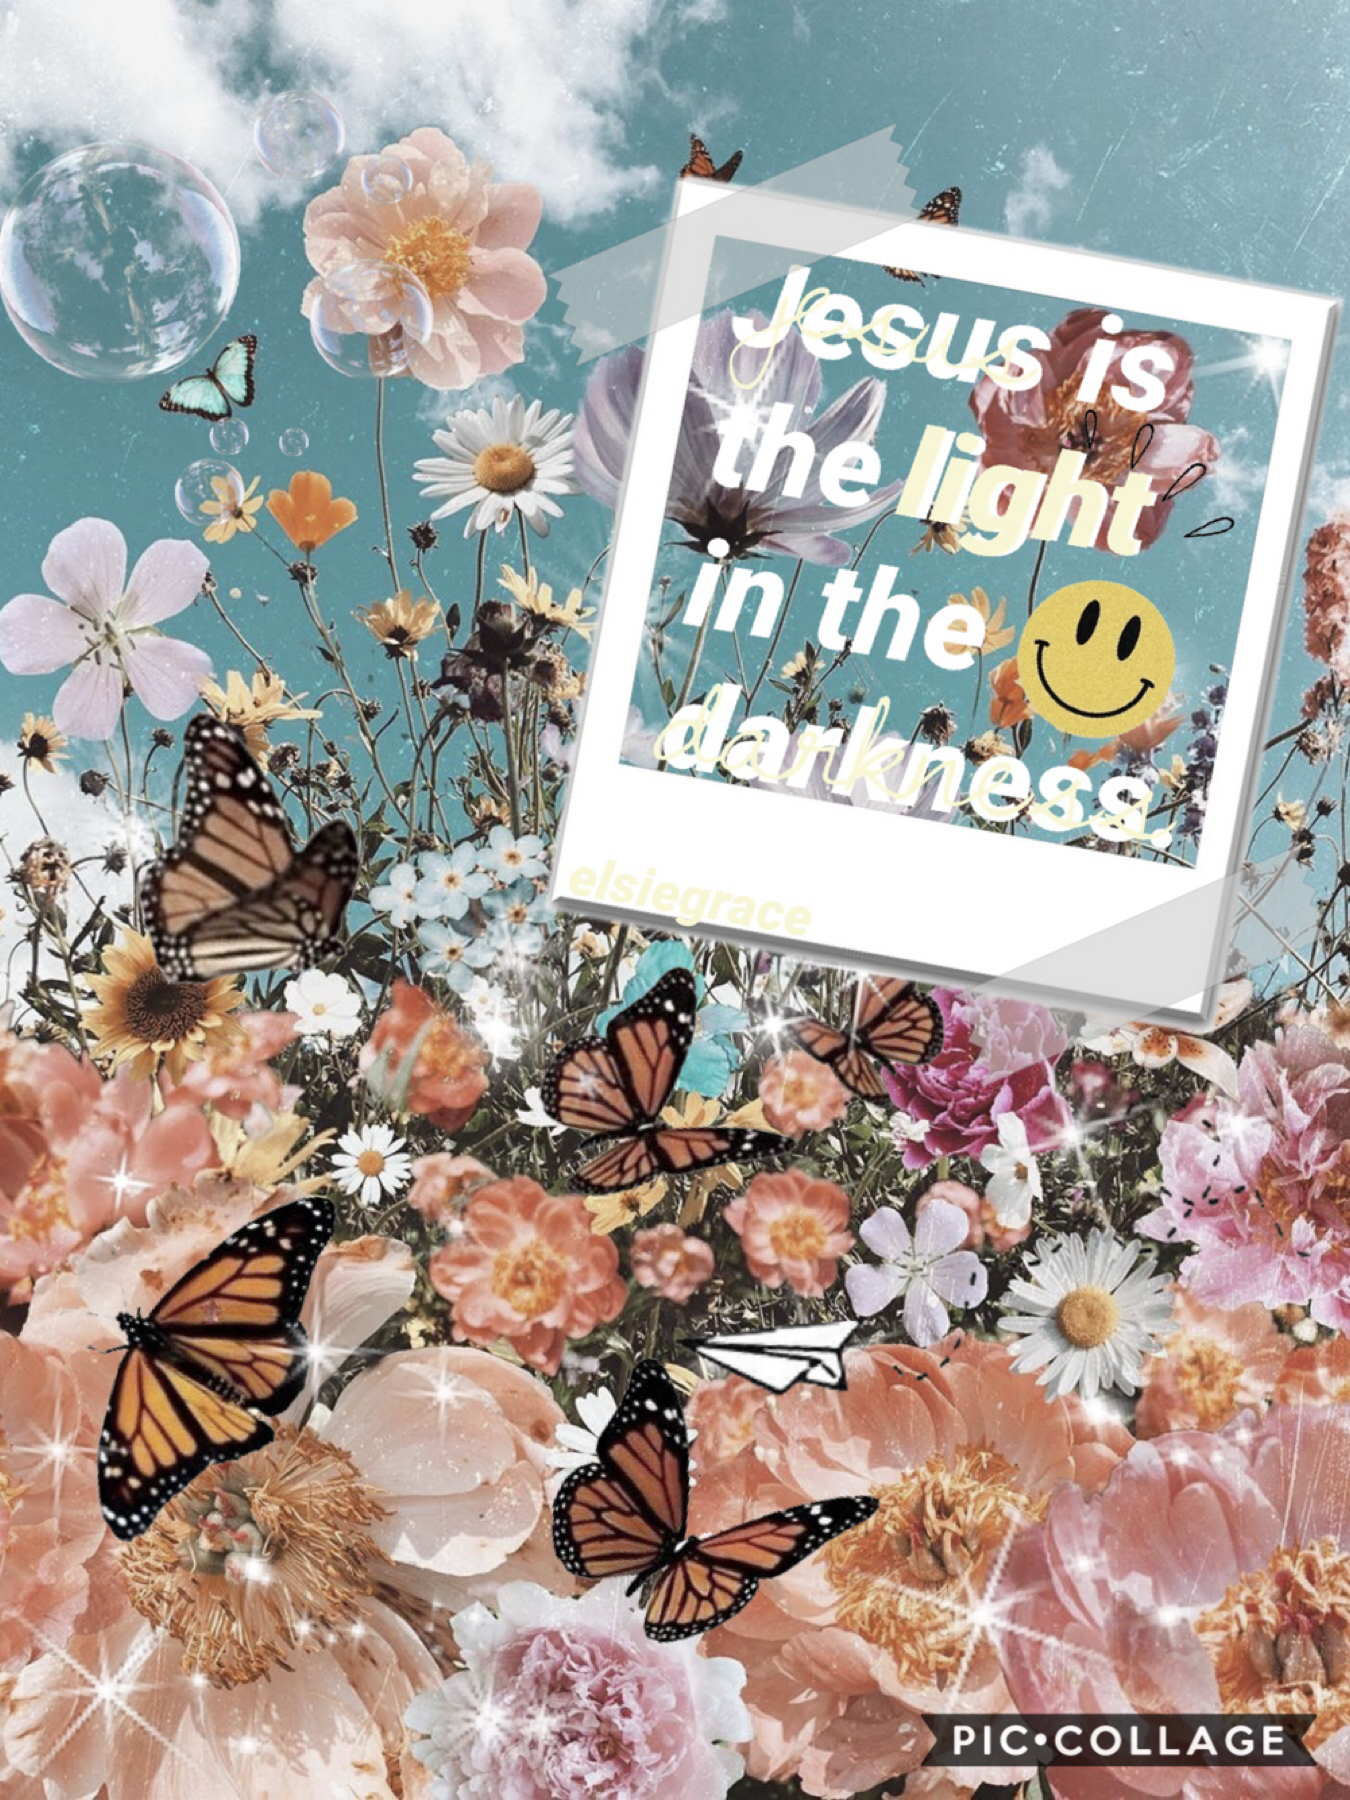 He is the light!